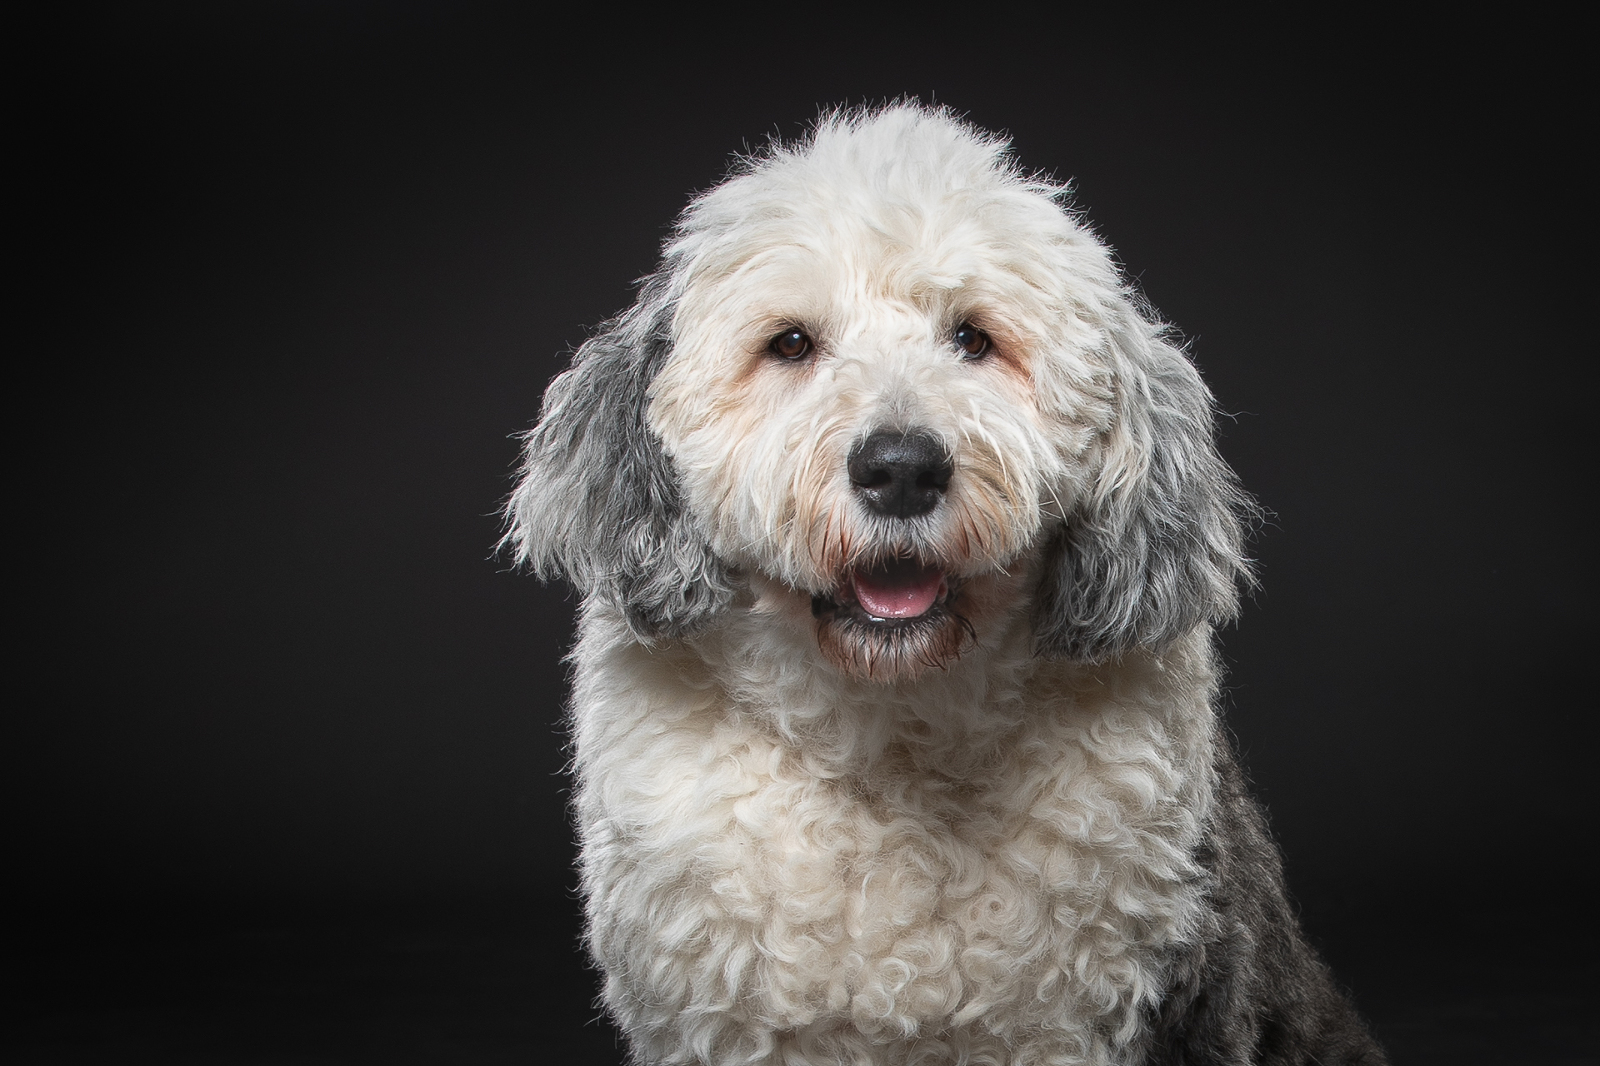 Old English Sheep Dog Studio Portrait